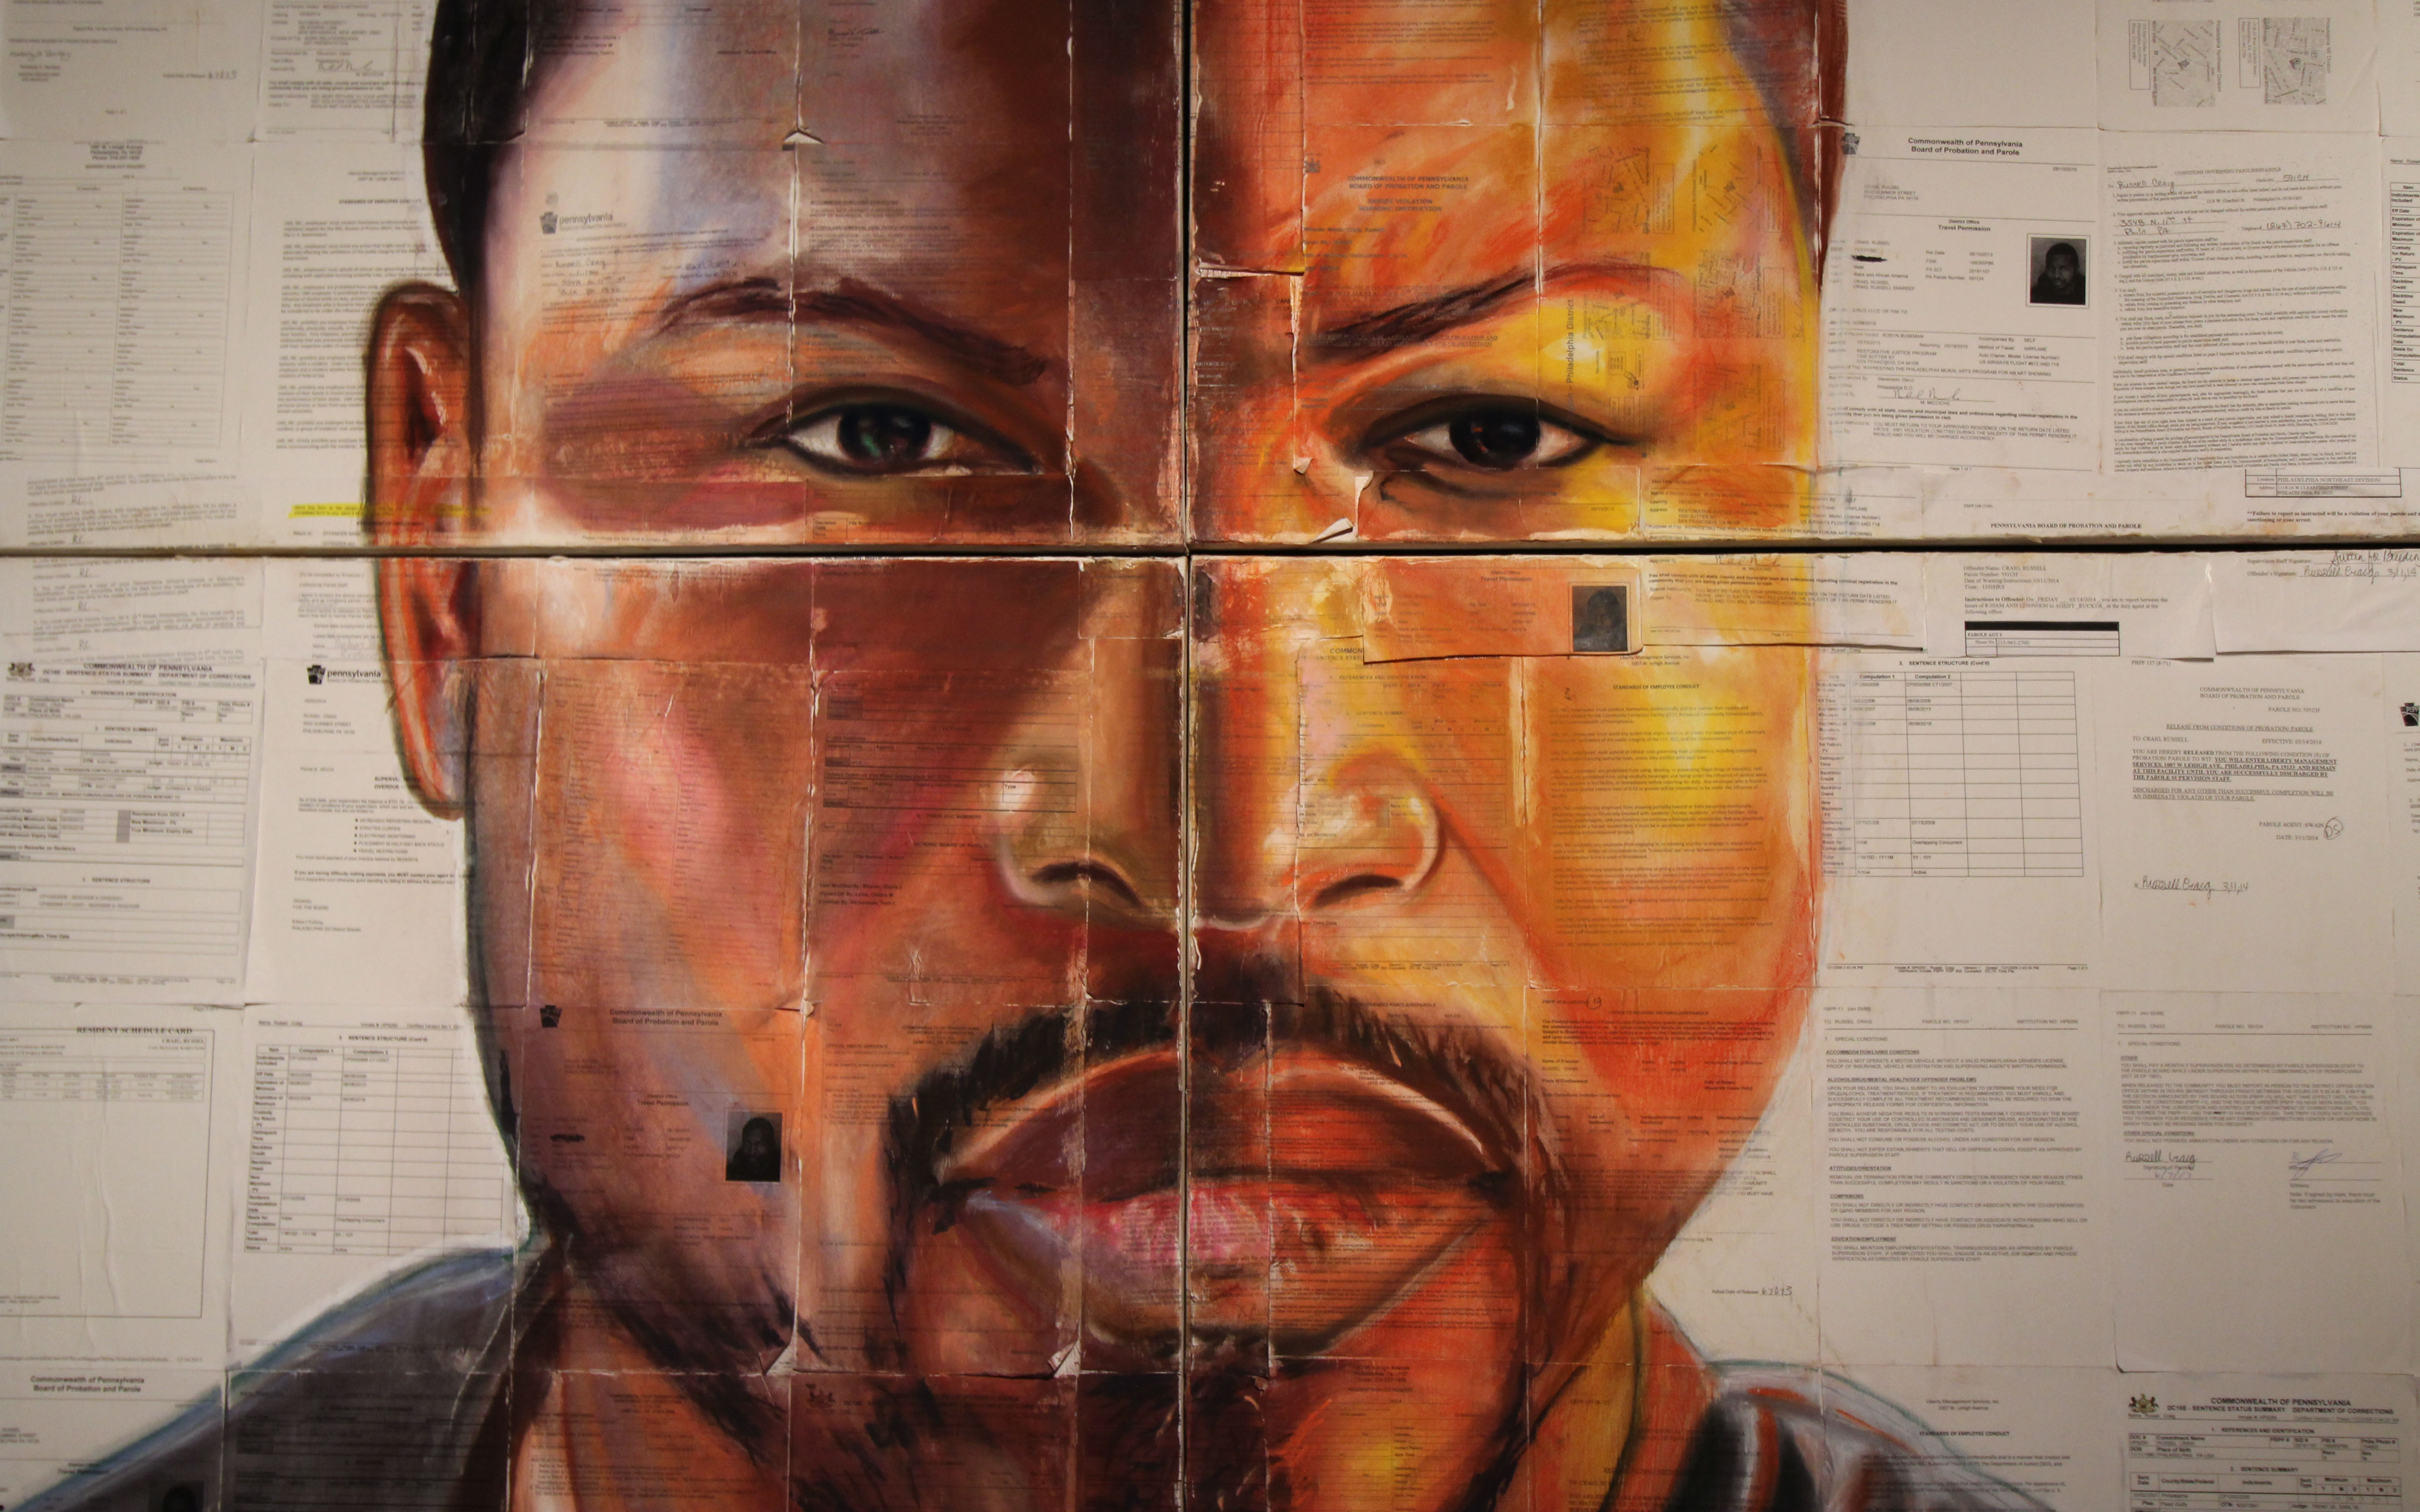 Talk | Carceral Aesthetics: Prison Art and Mass Incarceration with Nicole R. Fleetwood